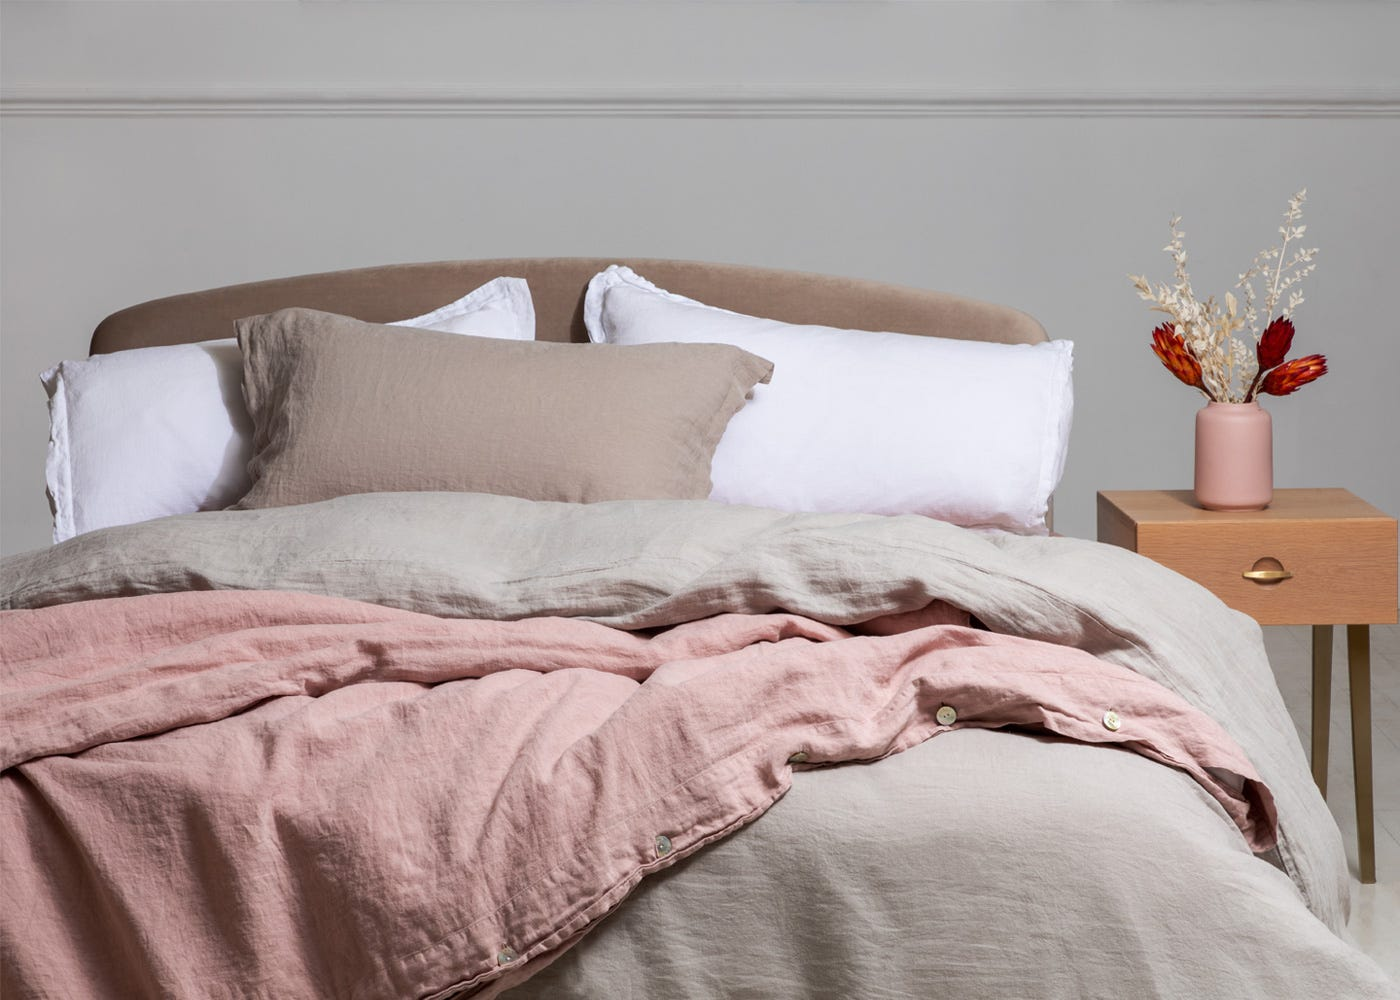 Mix and match with washed linen natural and white to add warmth and a fresh look to your bedroom